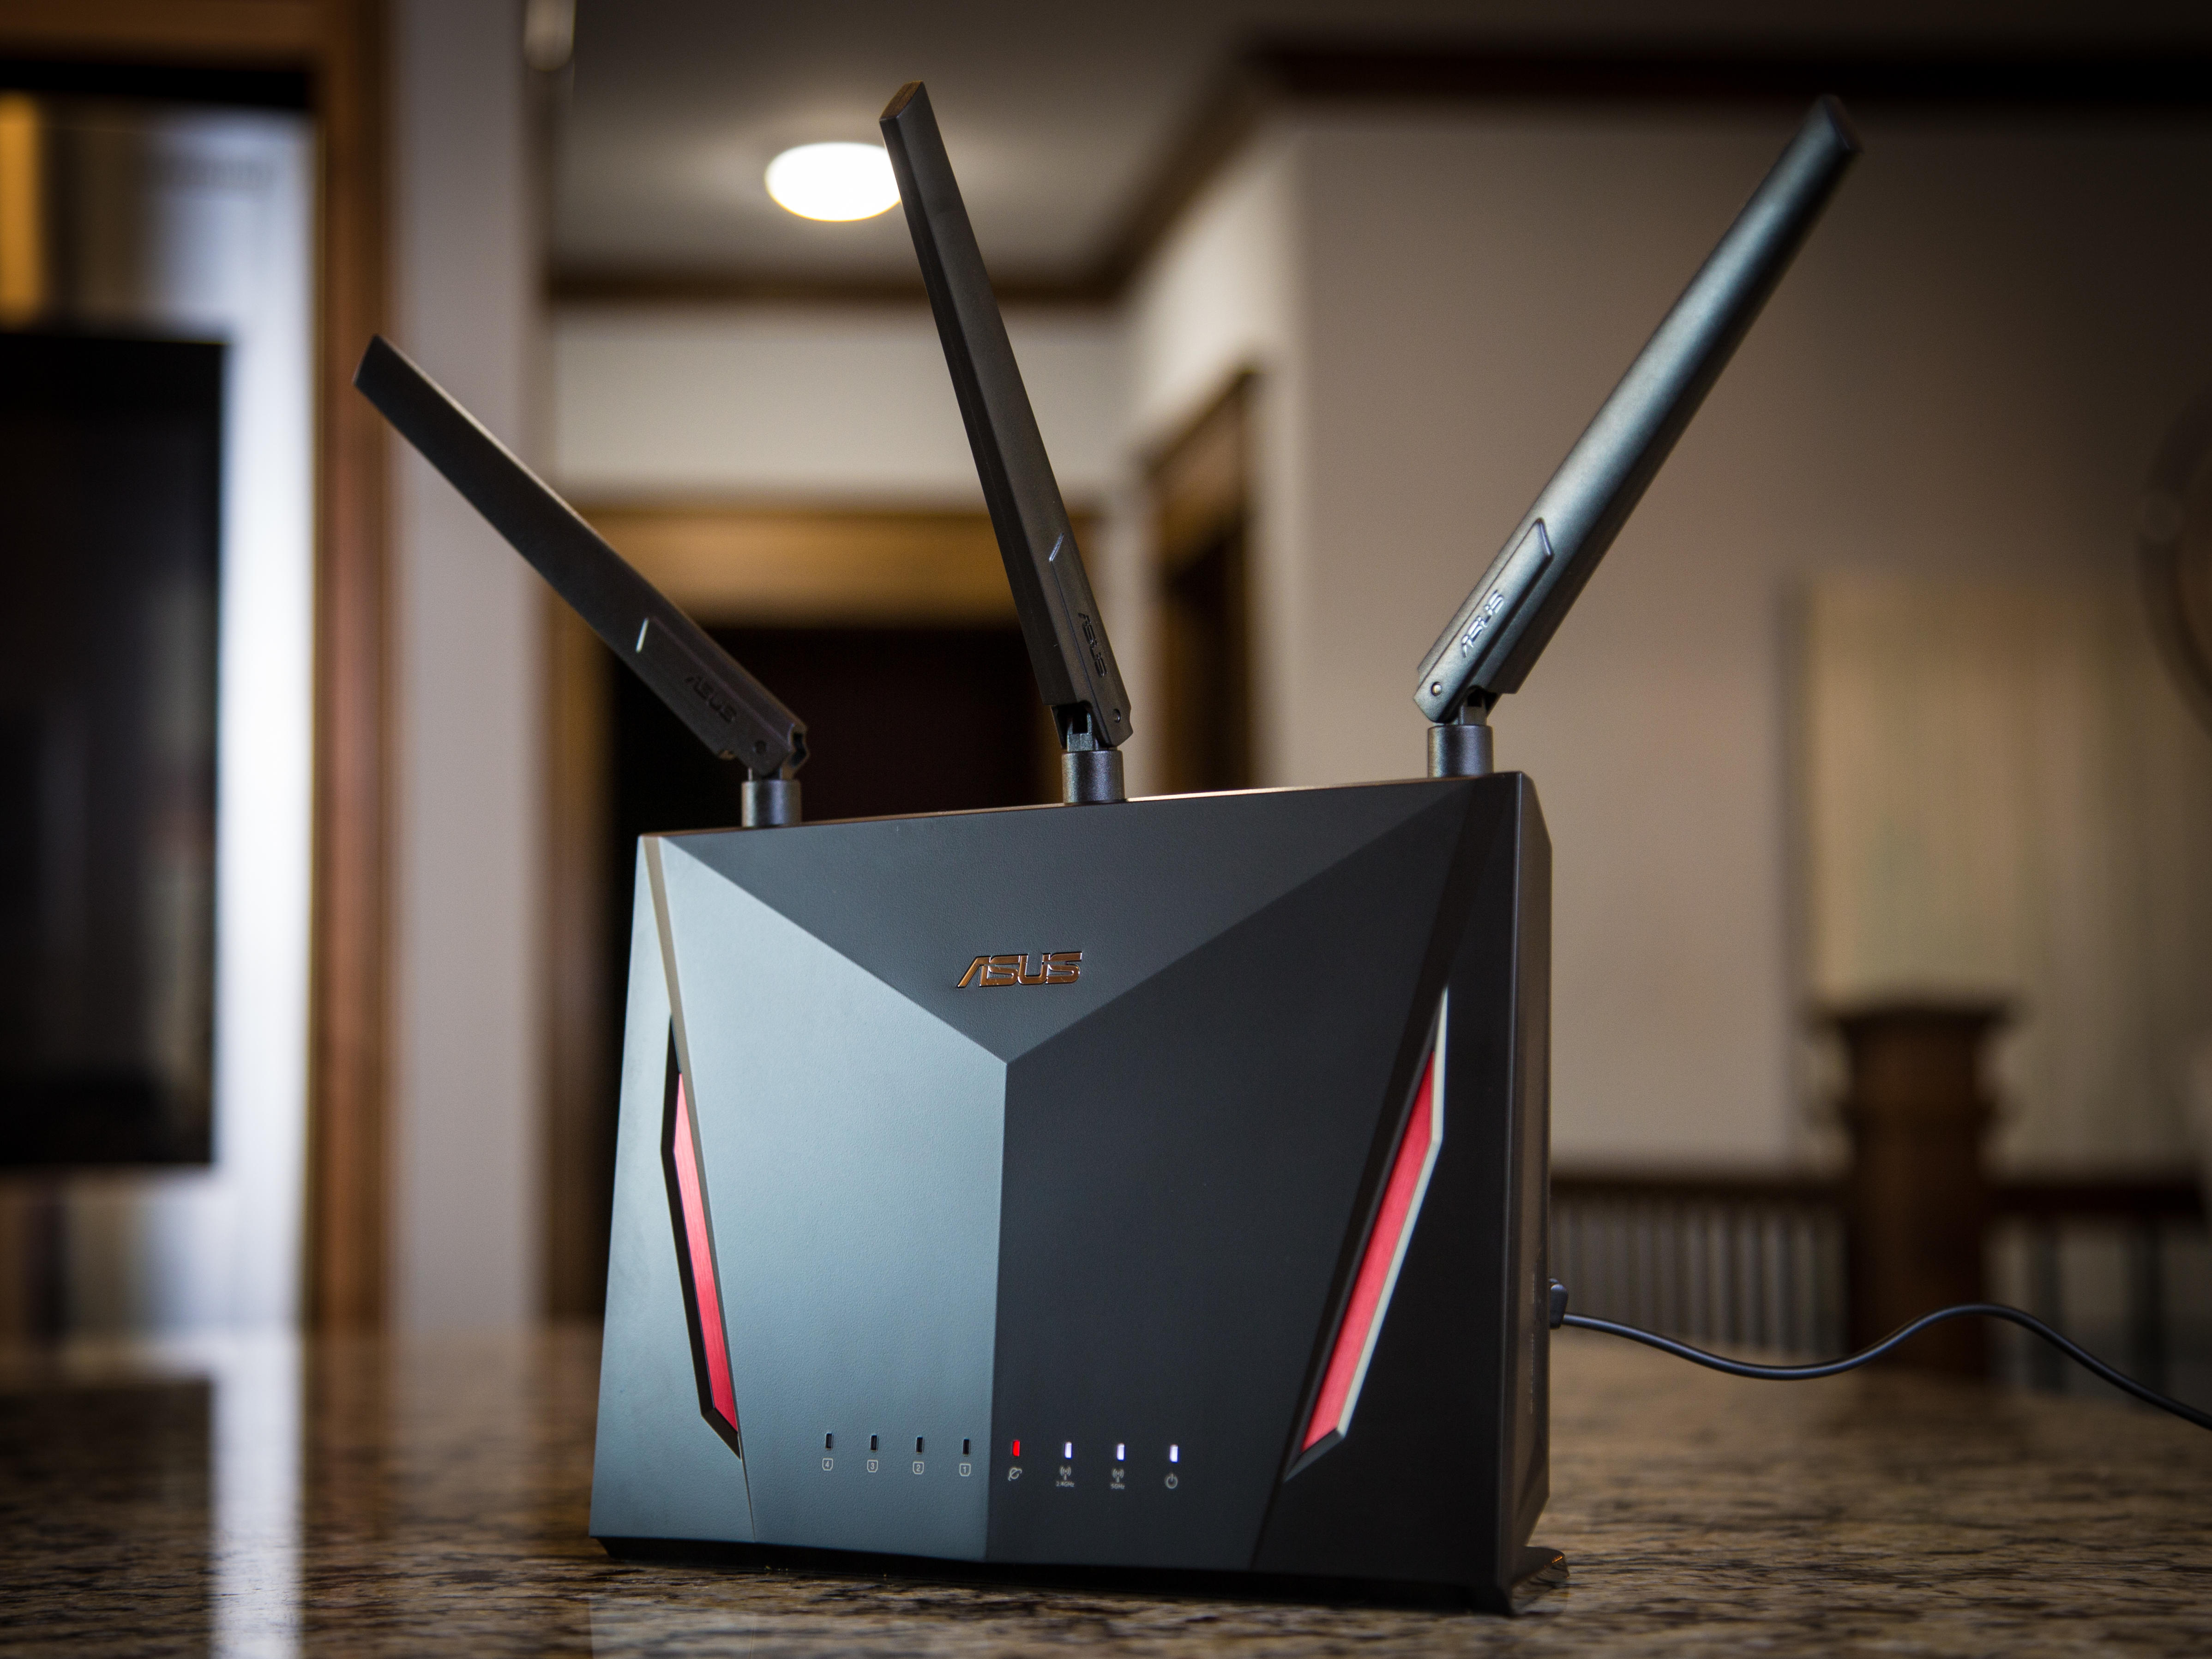 asus-router-1